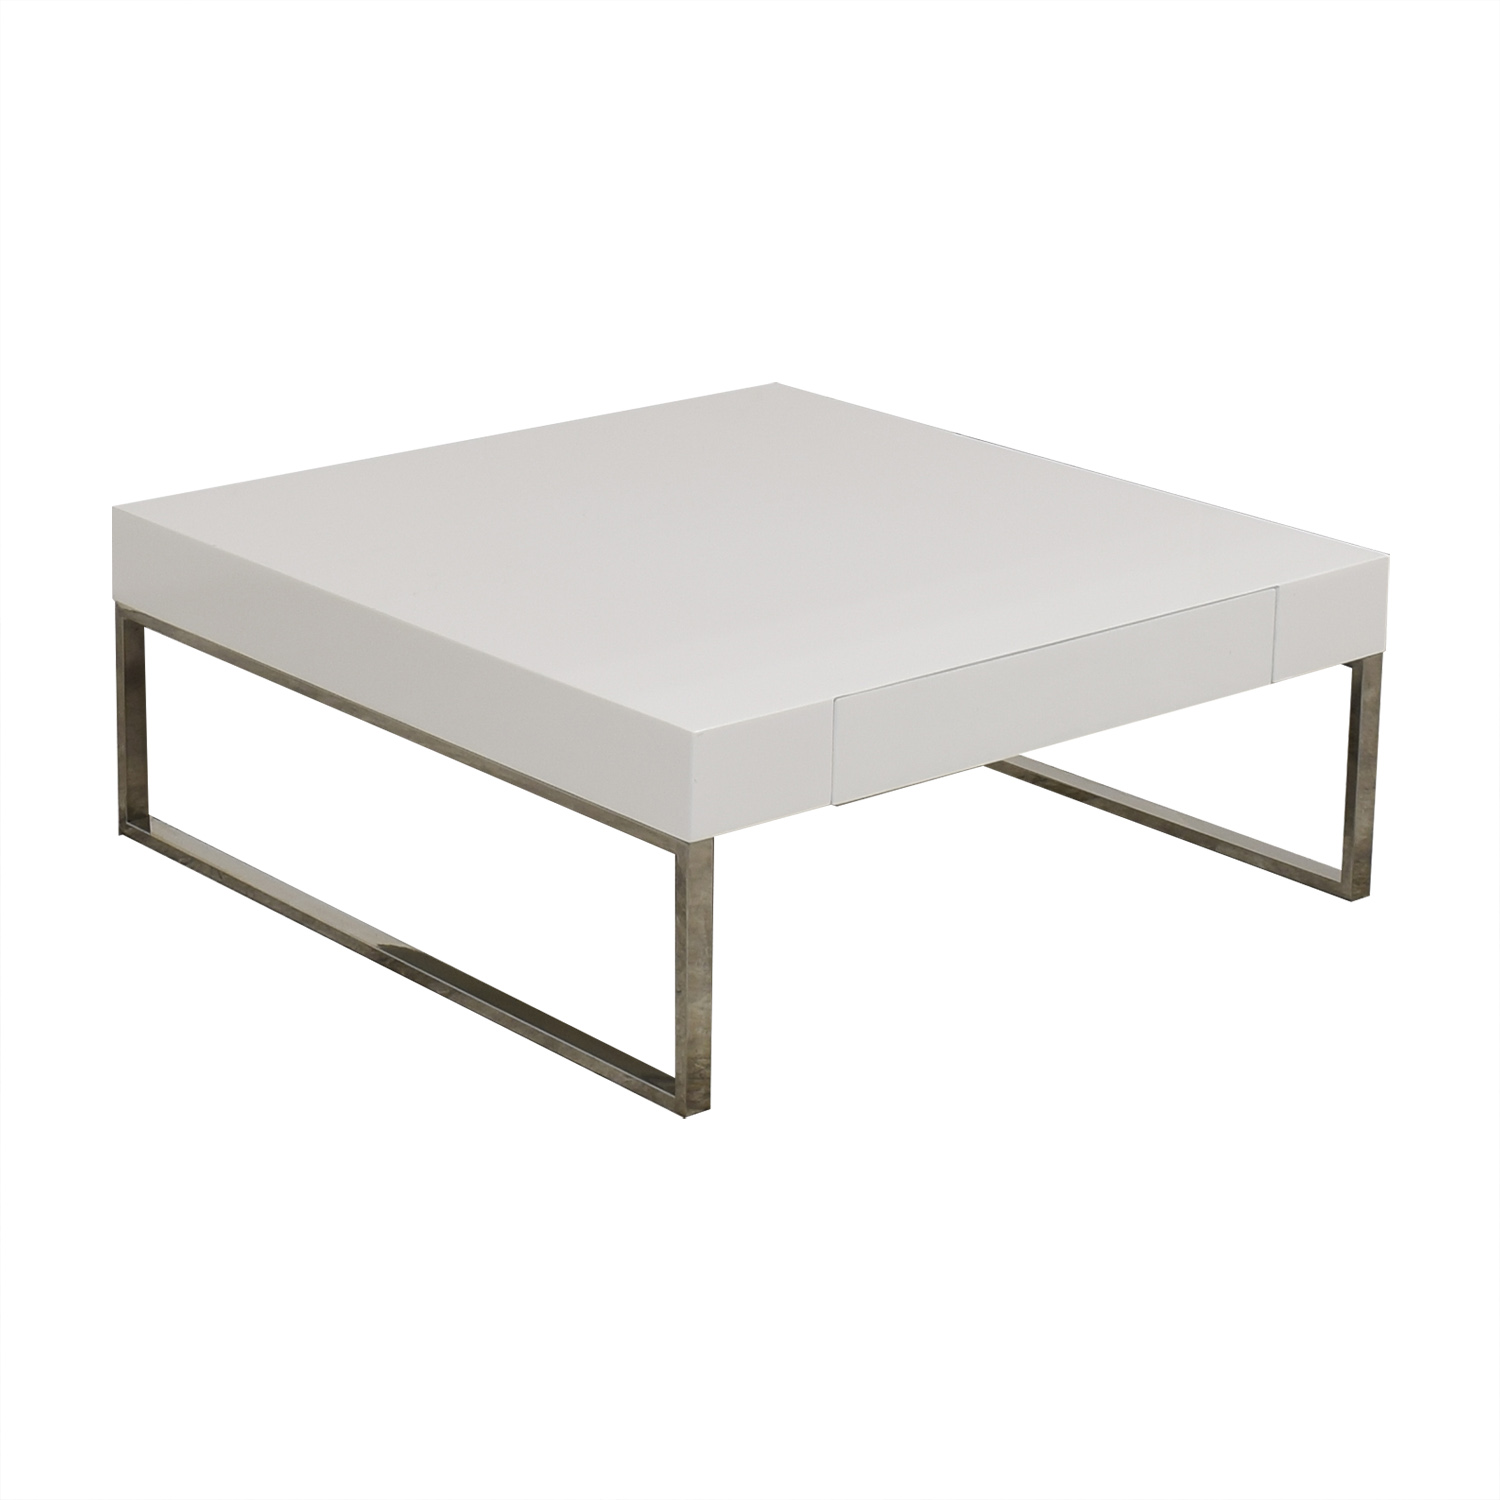 Modani Modani Gavino Coffee Table ma